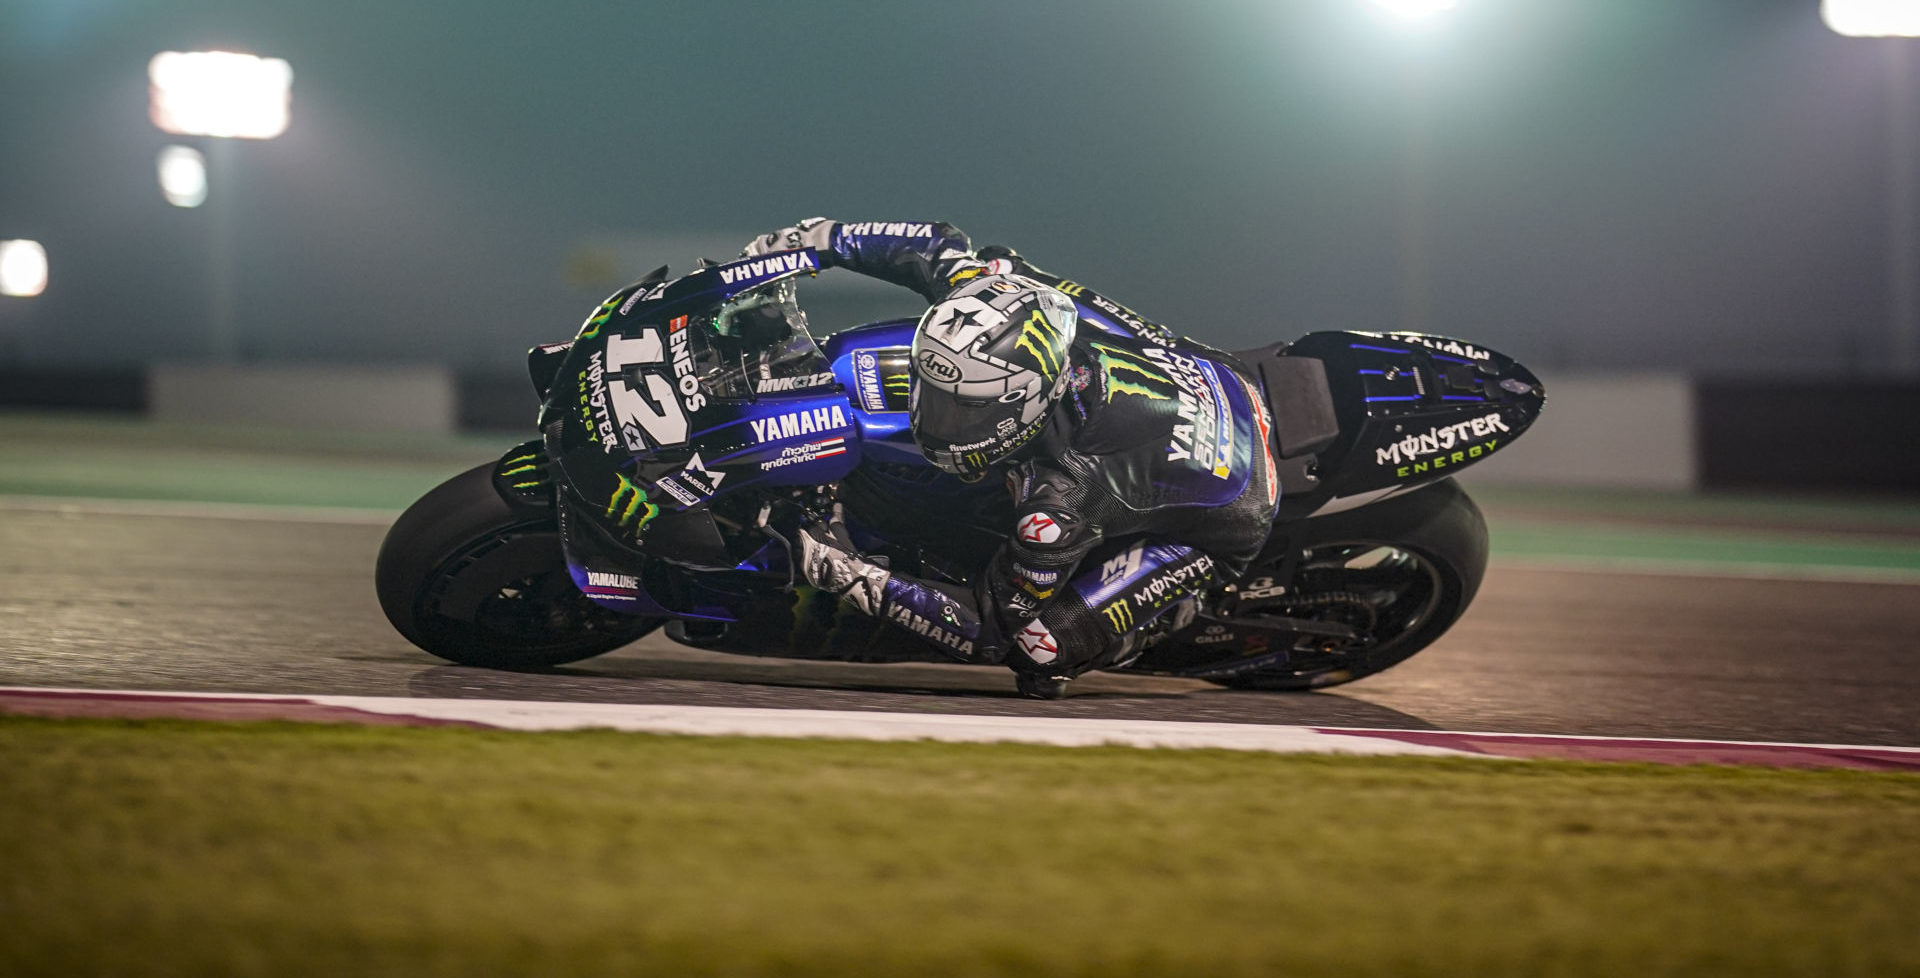 Maverick Vinales (12) at speed under the lights in Qatar. Photo courtesy of Monster Energy Yamaha.